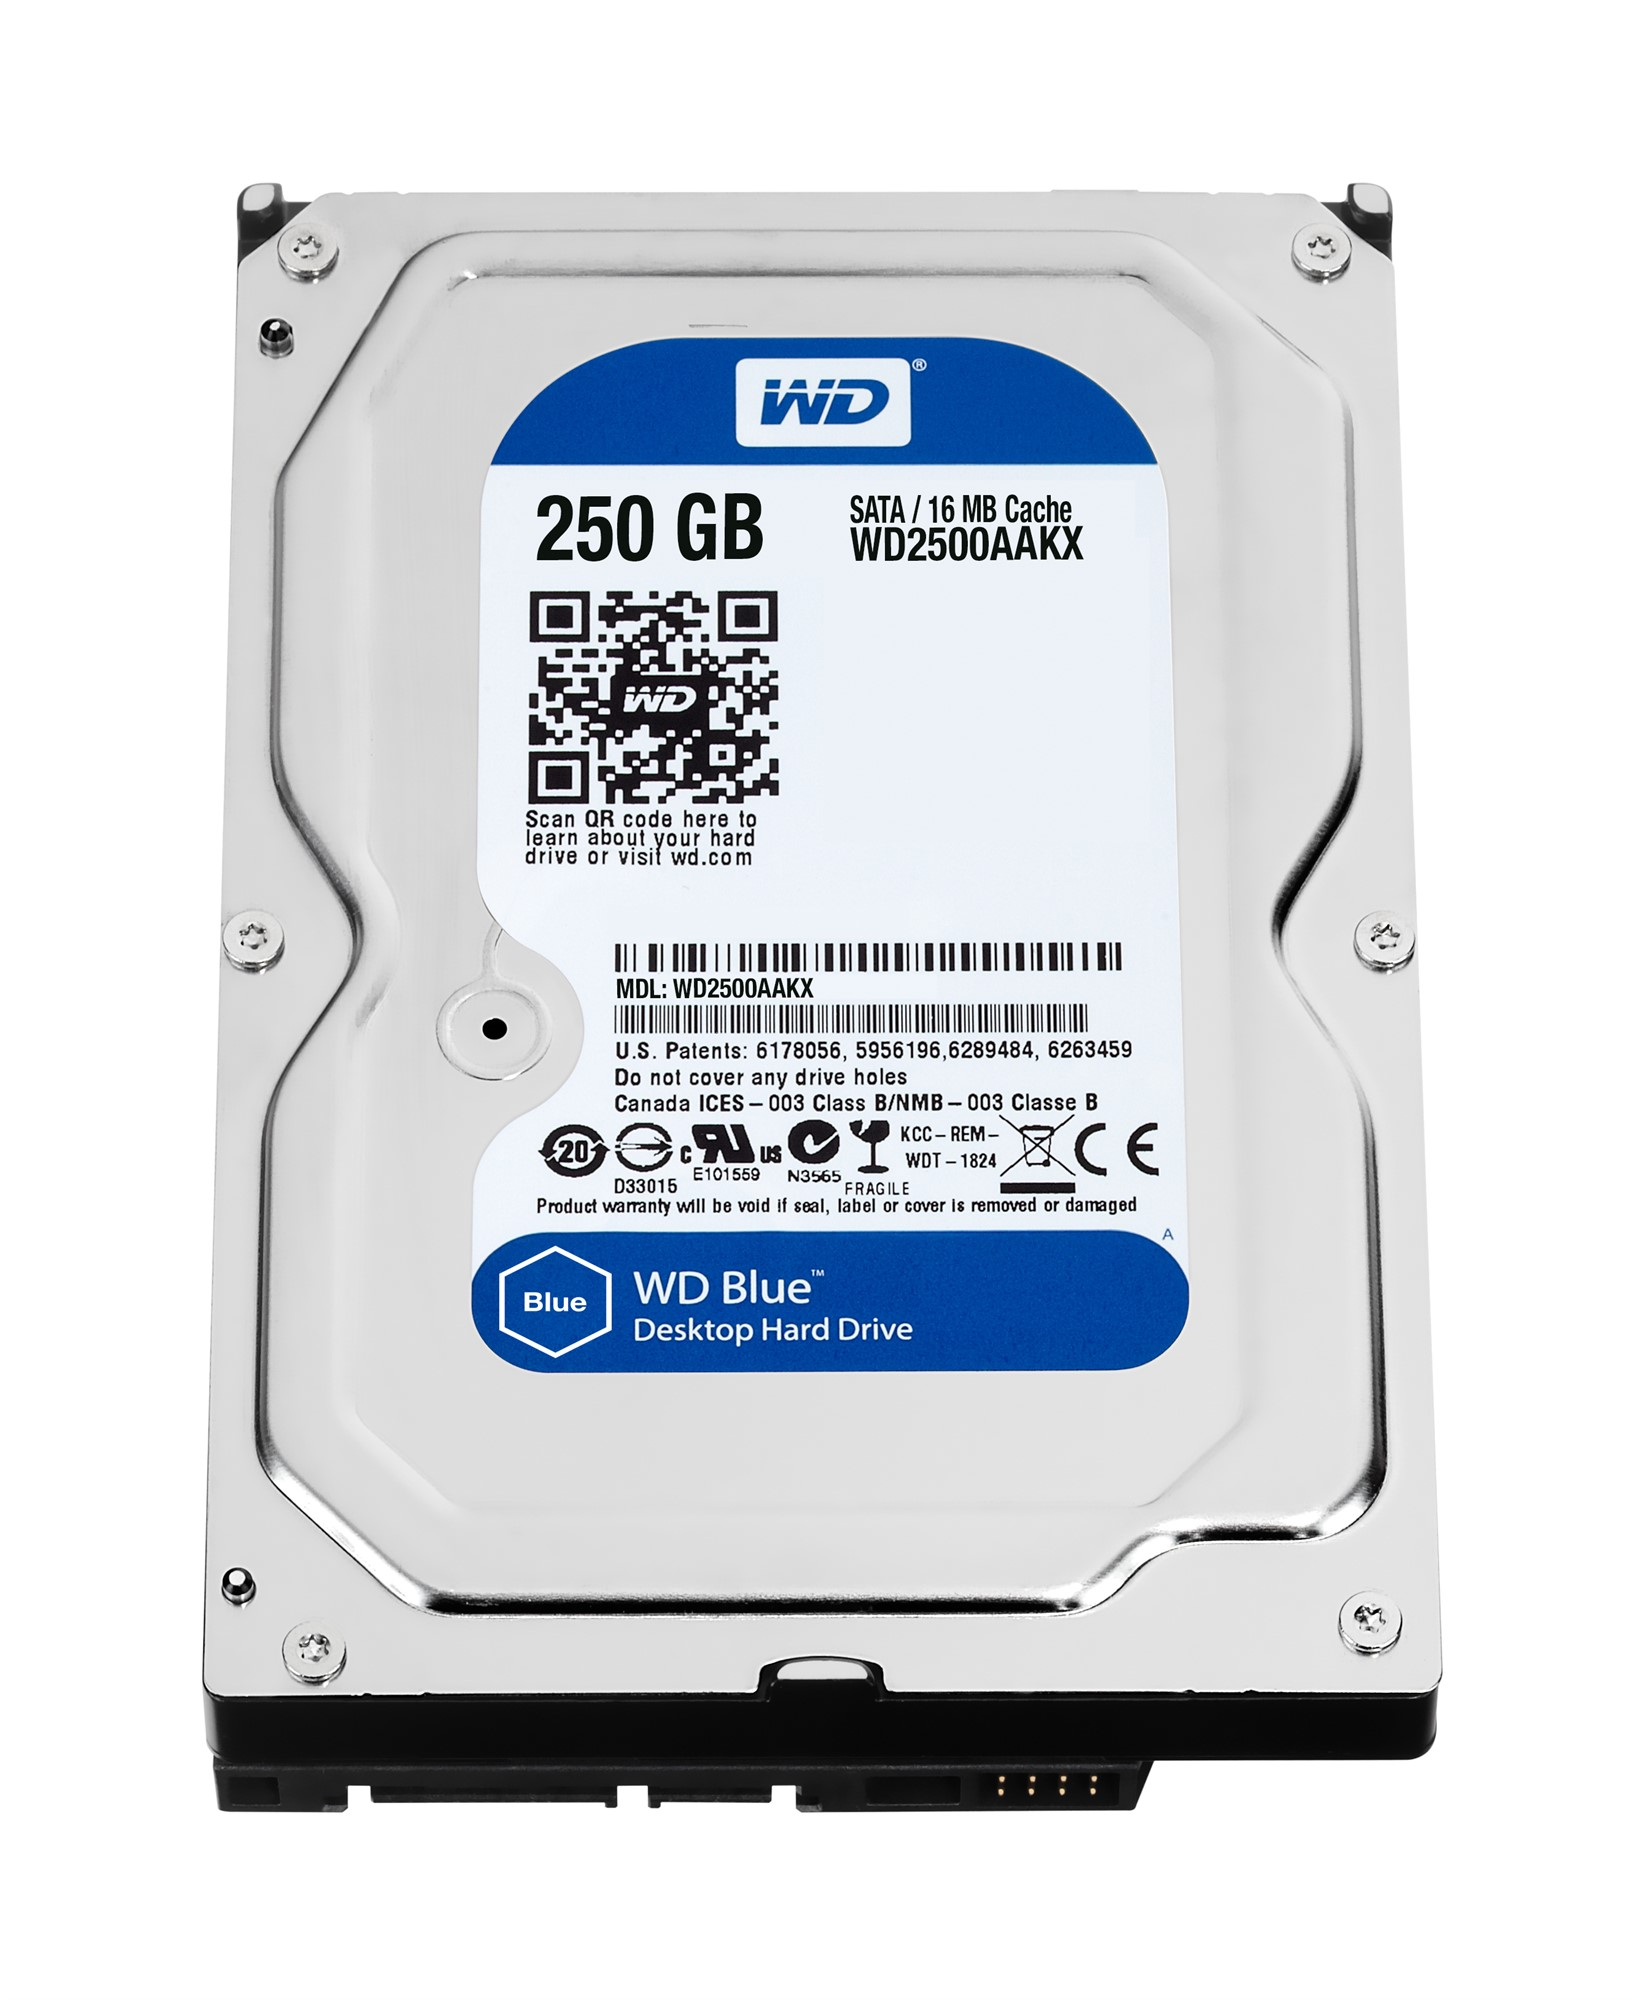 WESTERN DIGITAL CAVIAR BLUE 250GB SERIAL ATA INTERNAL HARD DRIVE REFURBISHED